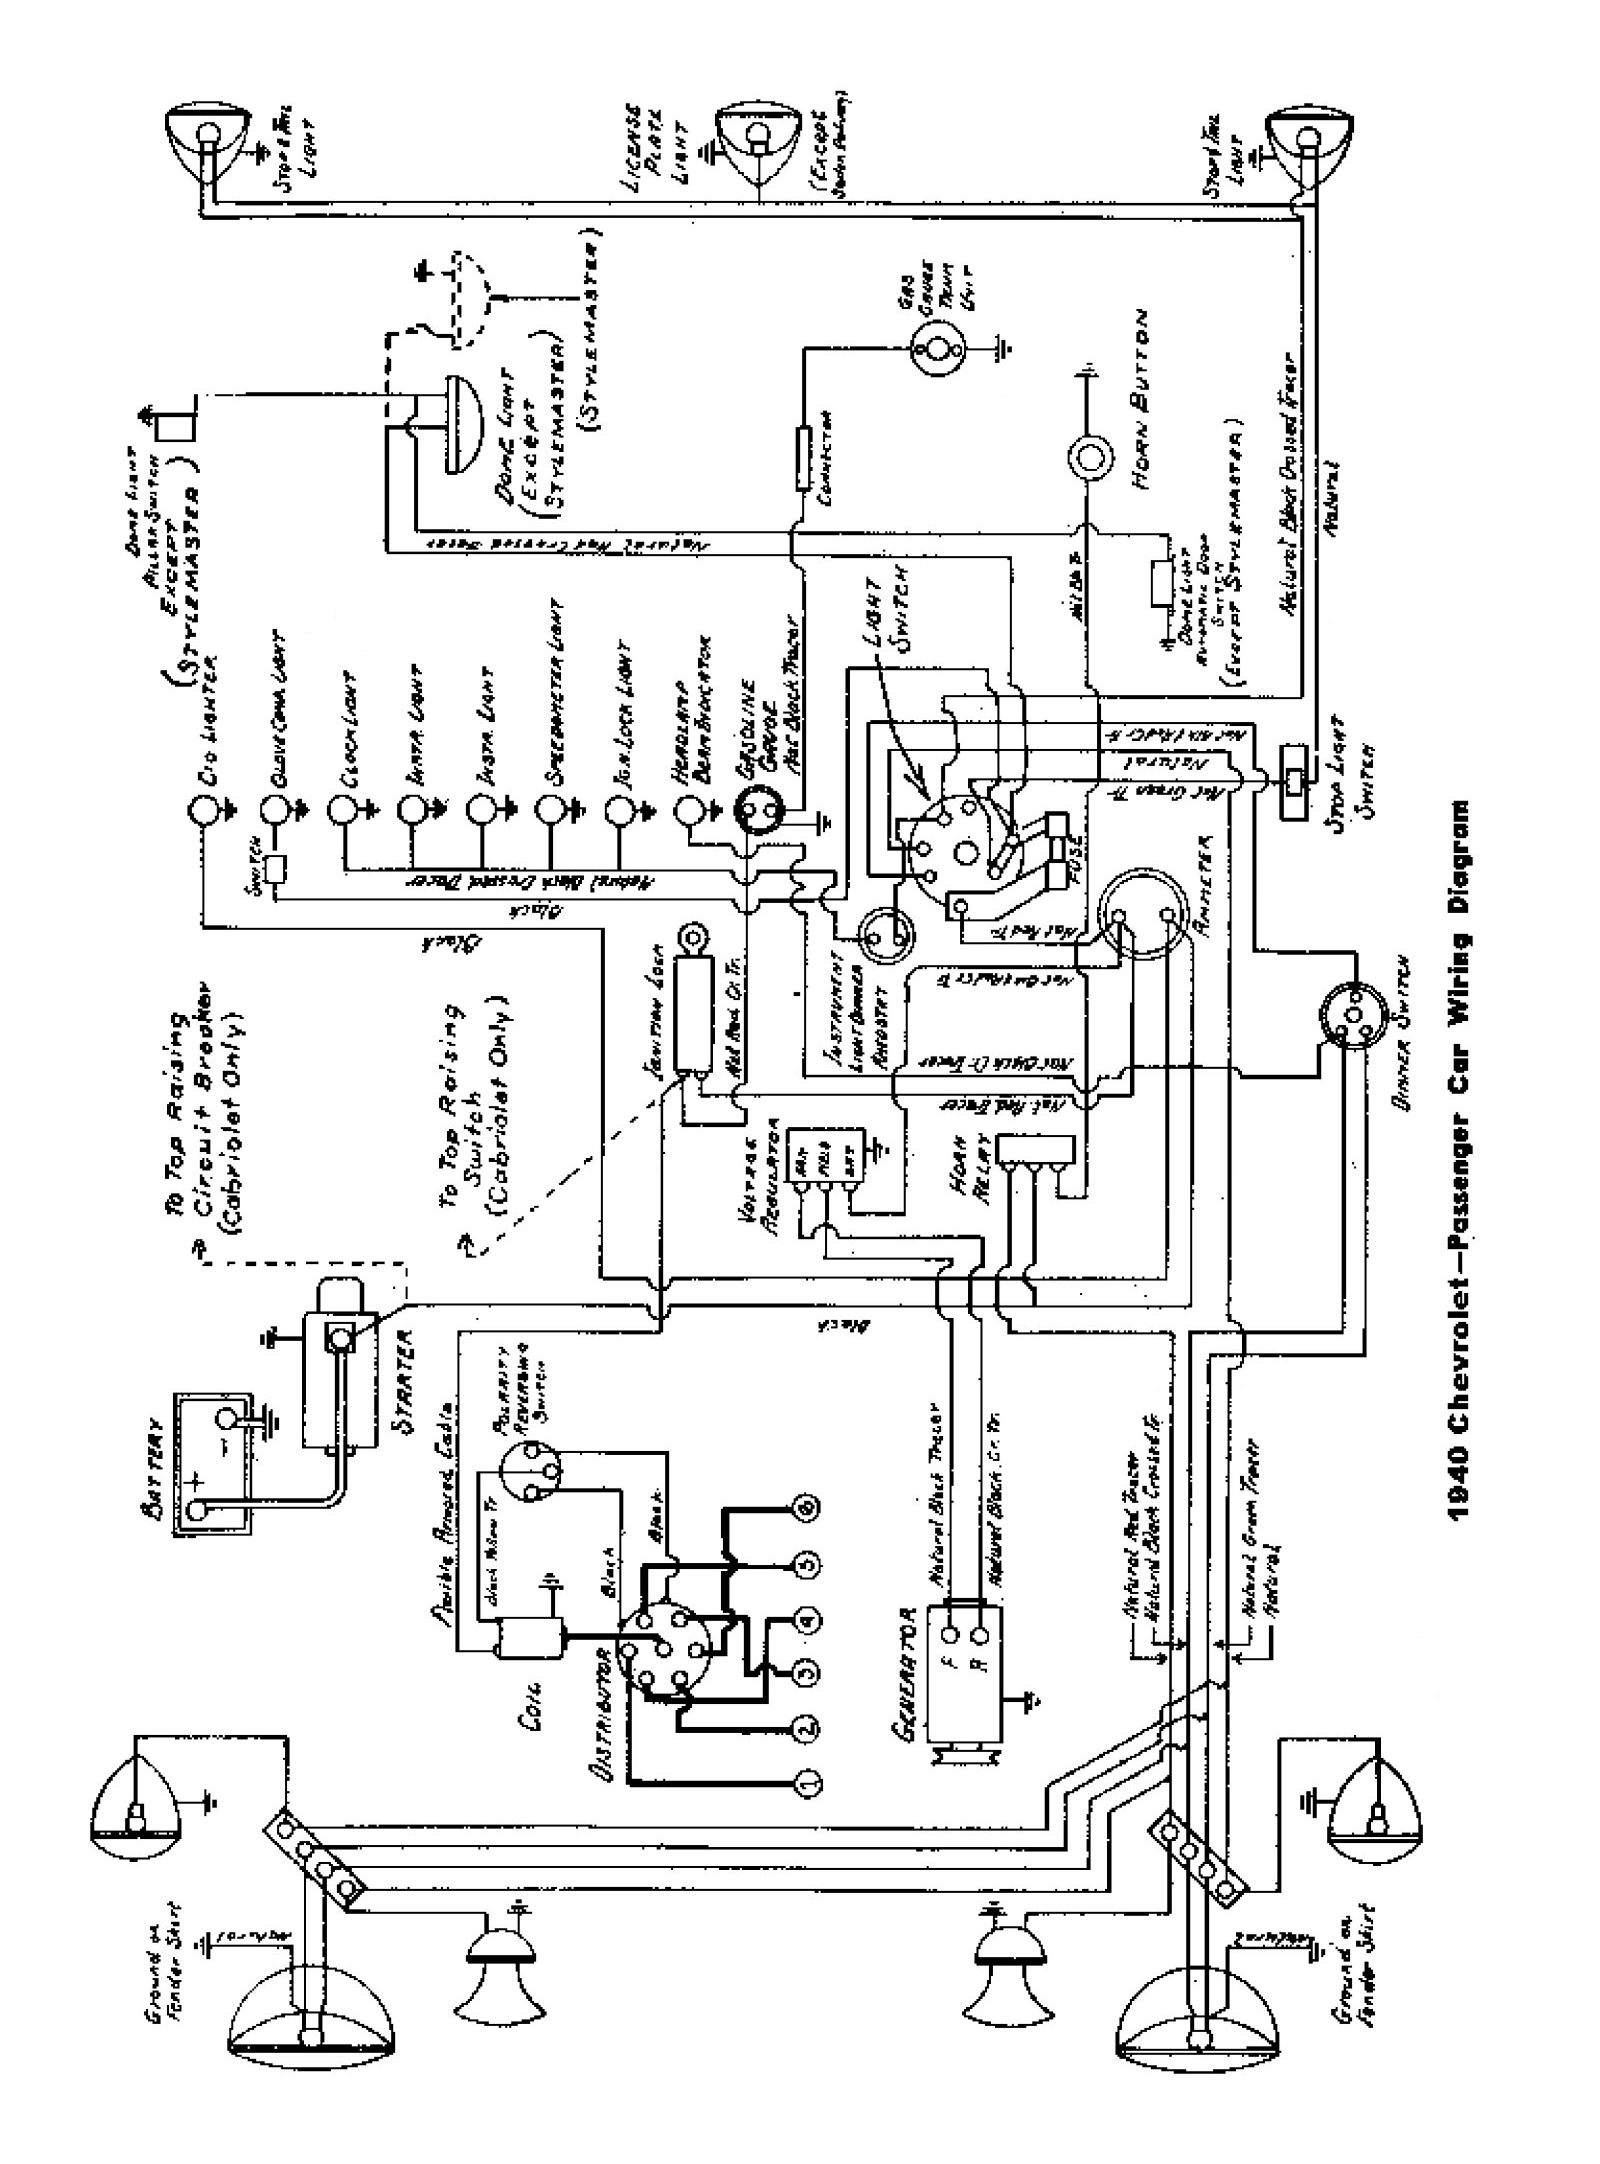 1940 Ford Tractor Wiring Diagram Wire Center Mower Starter Generator Chevy Diagrams Rh Oldcarmanualproject Com Kaiser M35a Truck Cushman